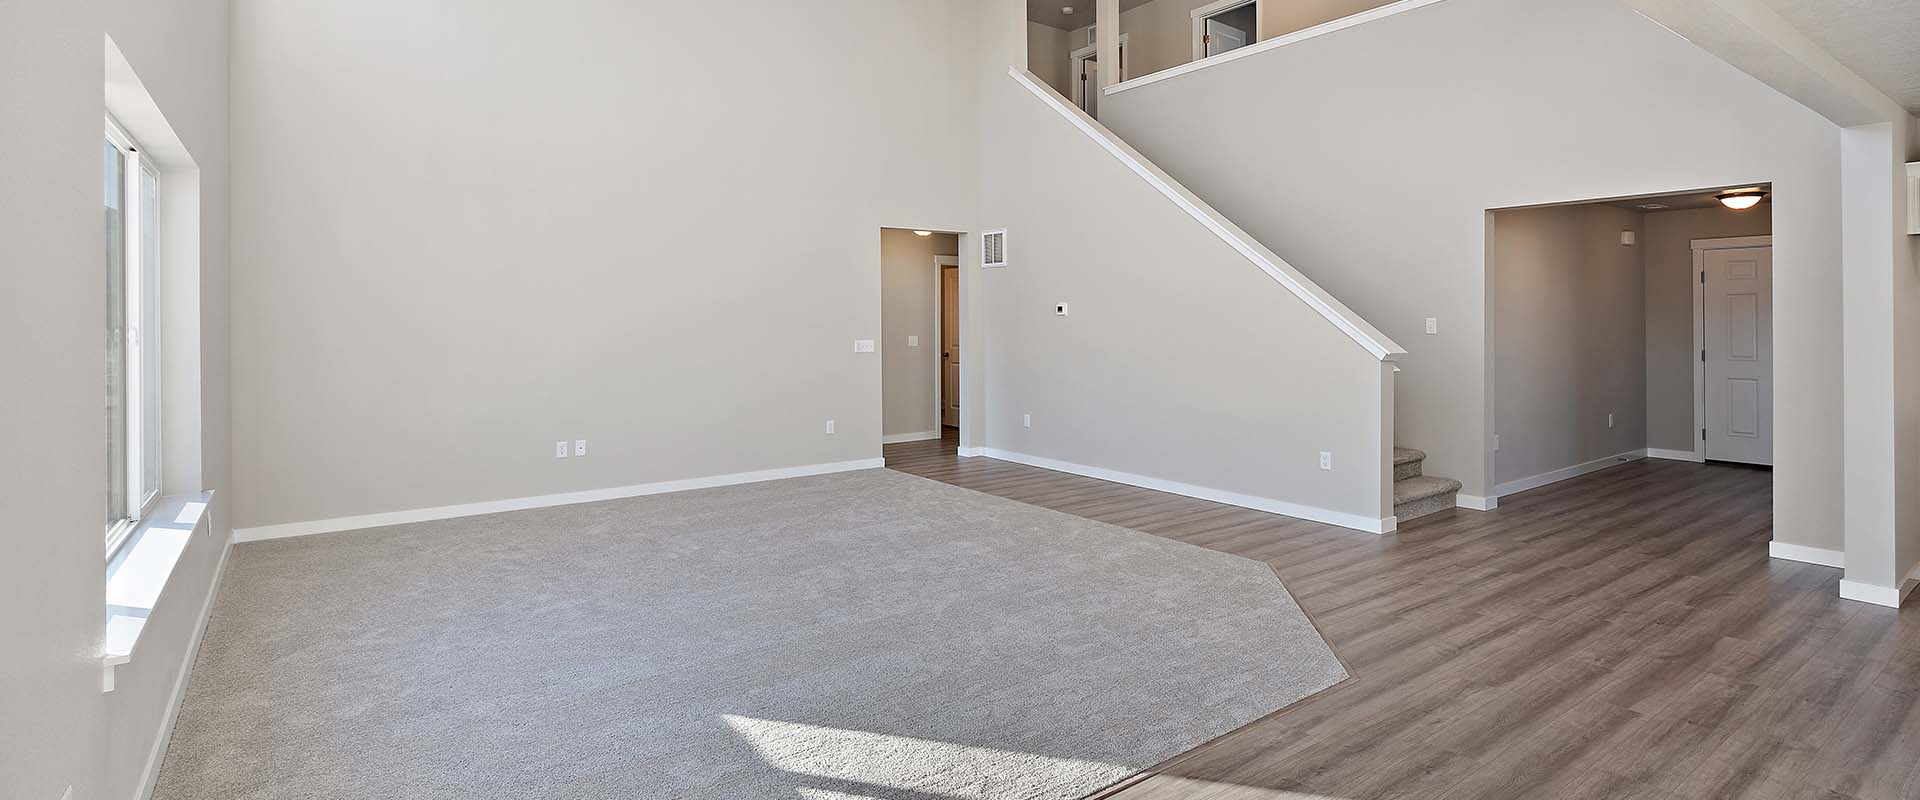 Topaz-Great-Room-new-homes-boise-idaho-hubble-homes.jpg